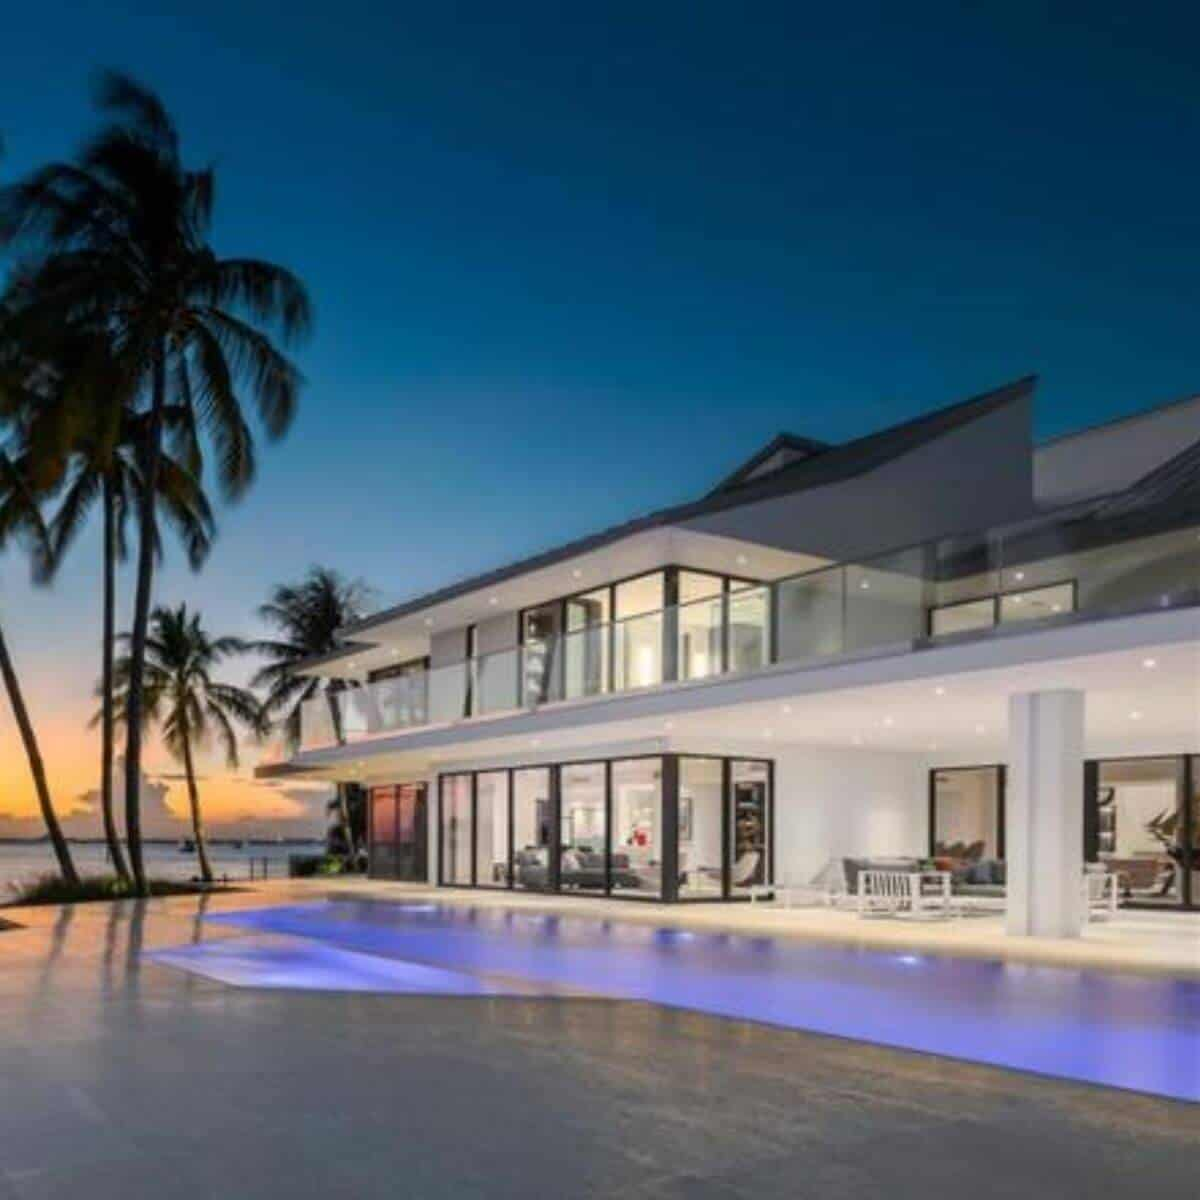 White 2-story modern mansion in Florida with a pool and view of the water during a sunset.